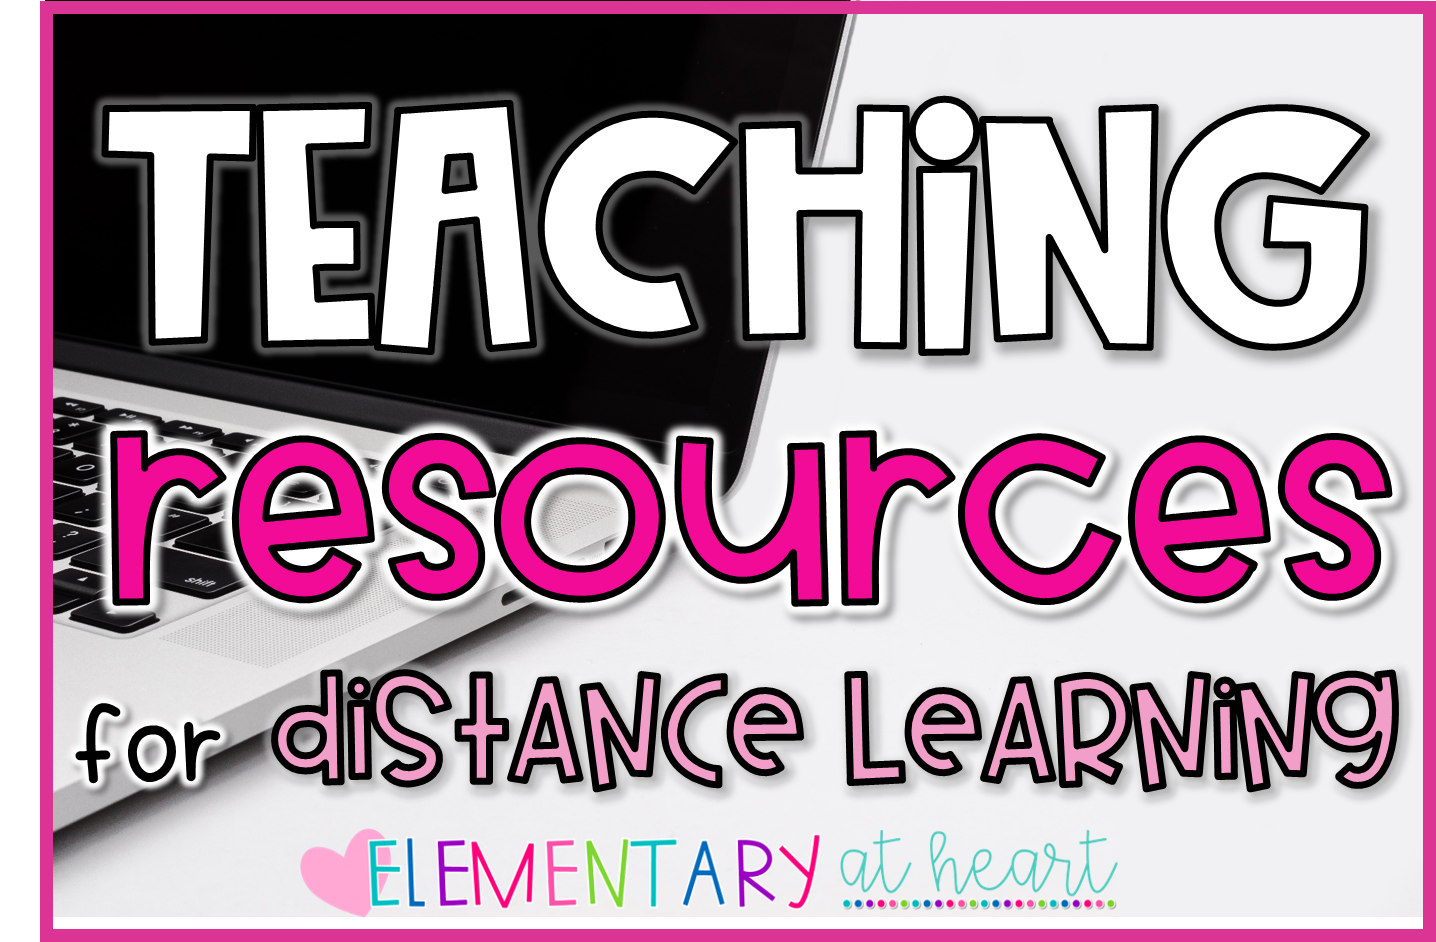 teaching-resources-for-distance-learning